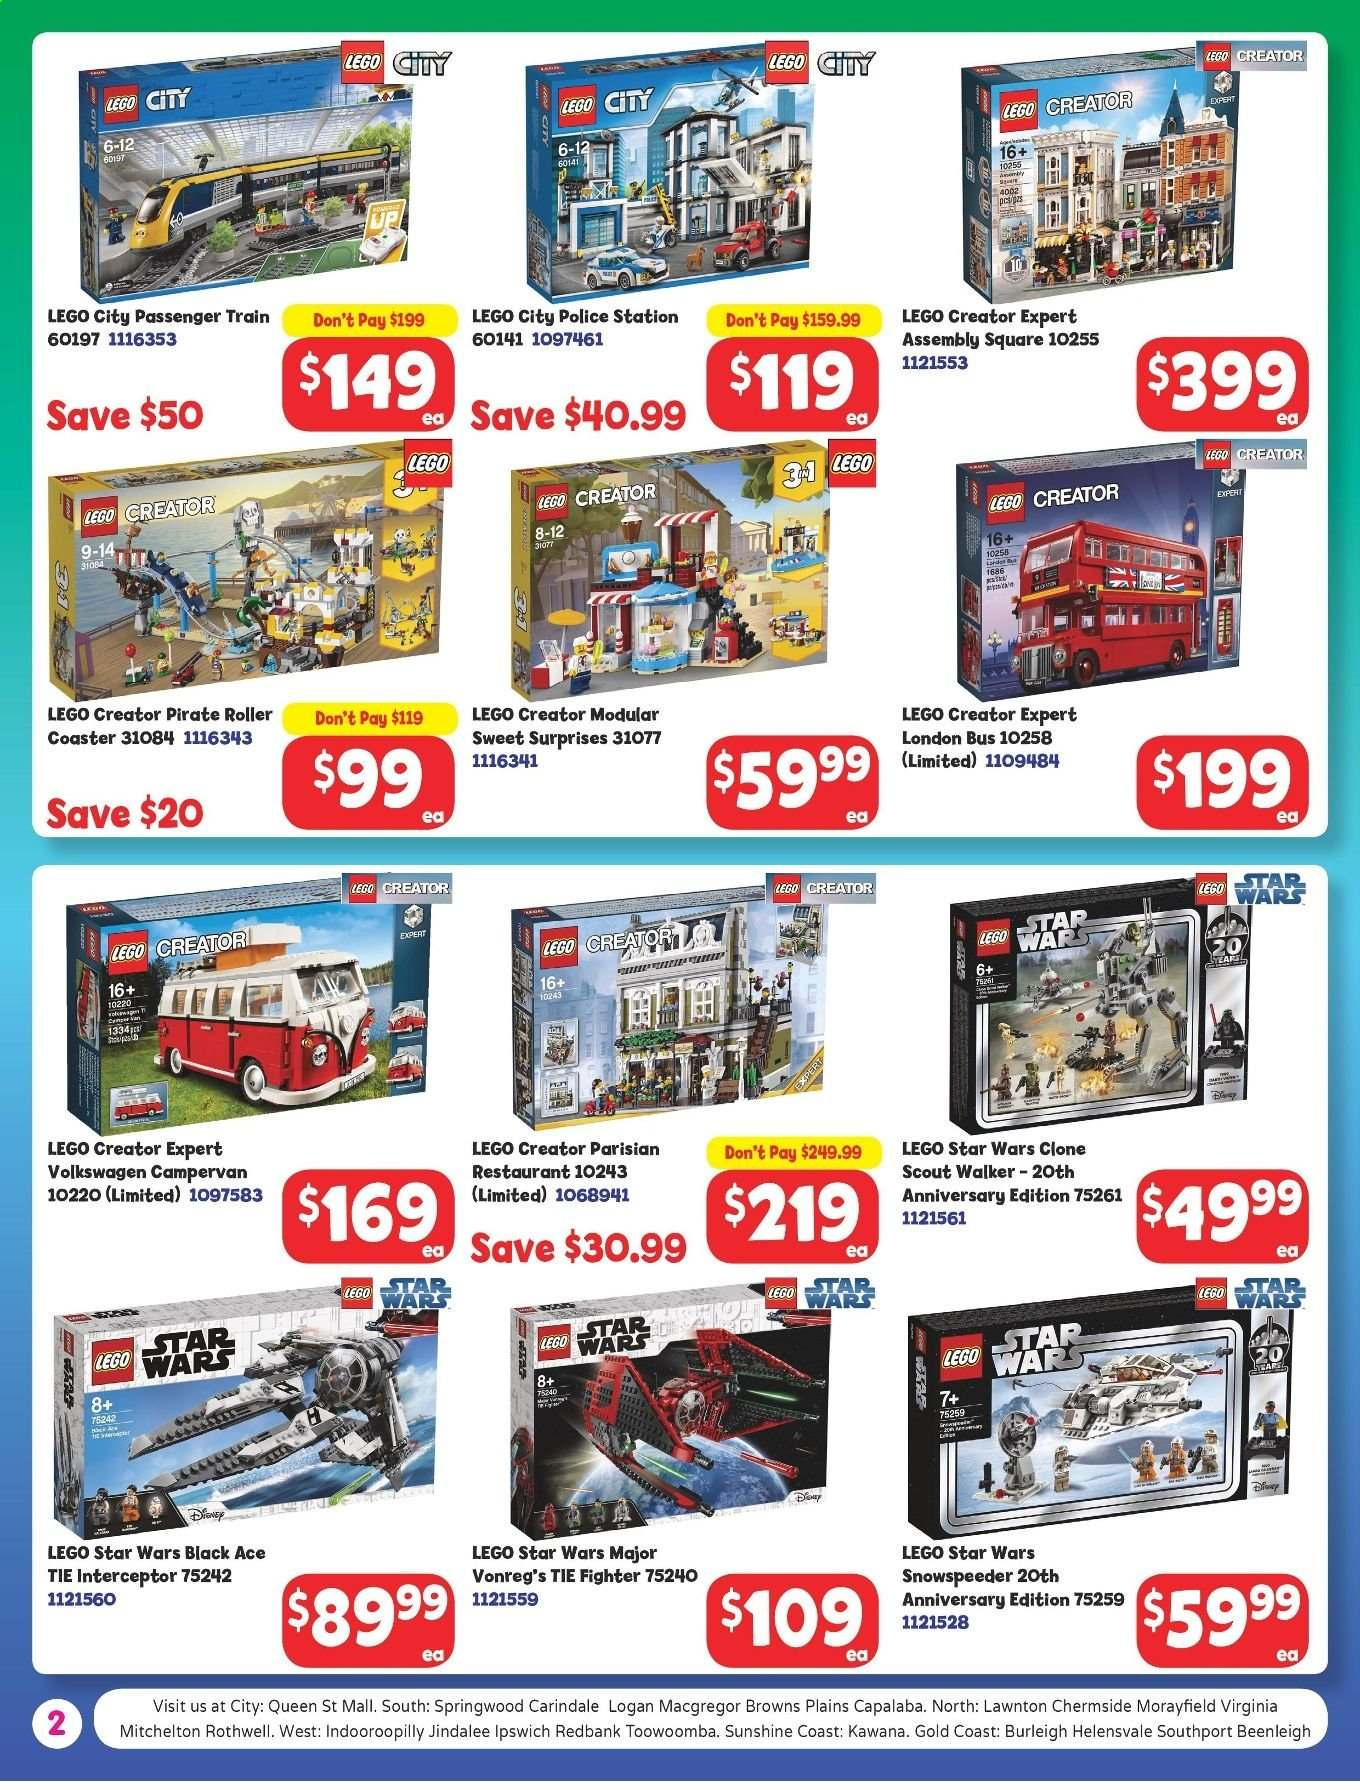 Mr Toys catalogue and weekly specials 5 5 2019 - 28 6 2019